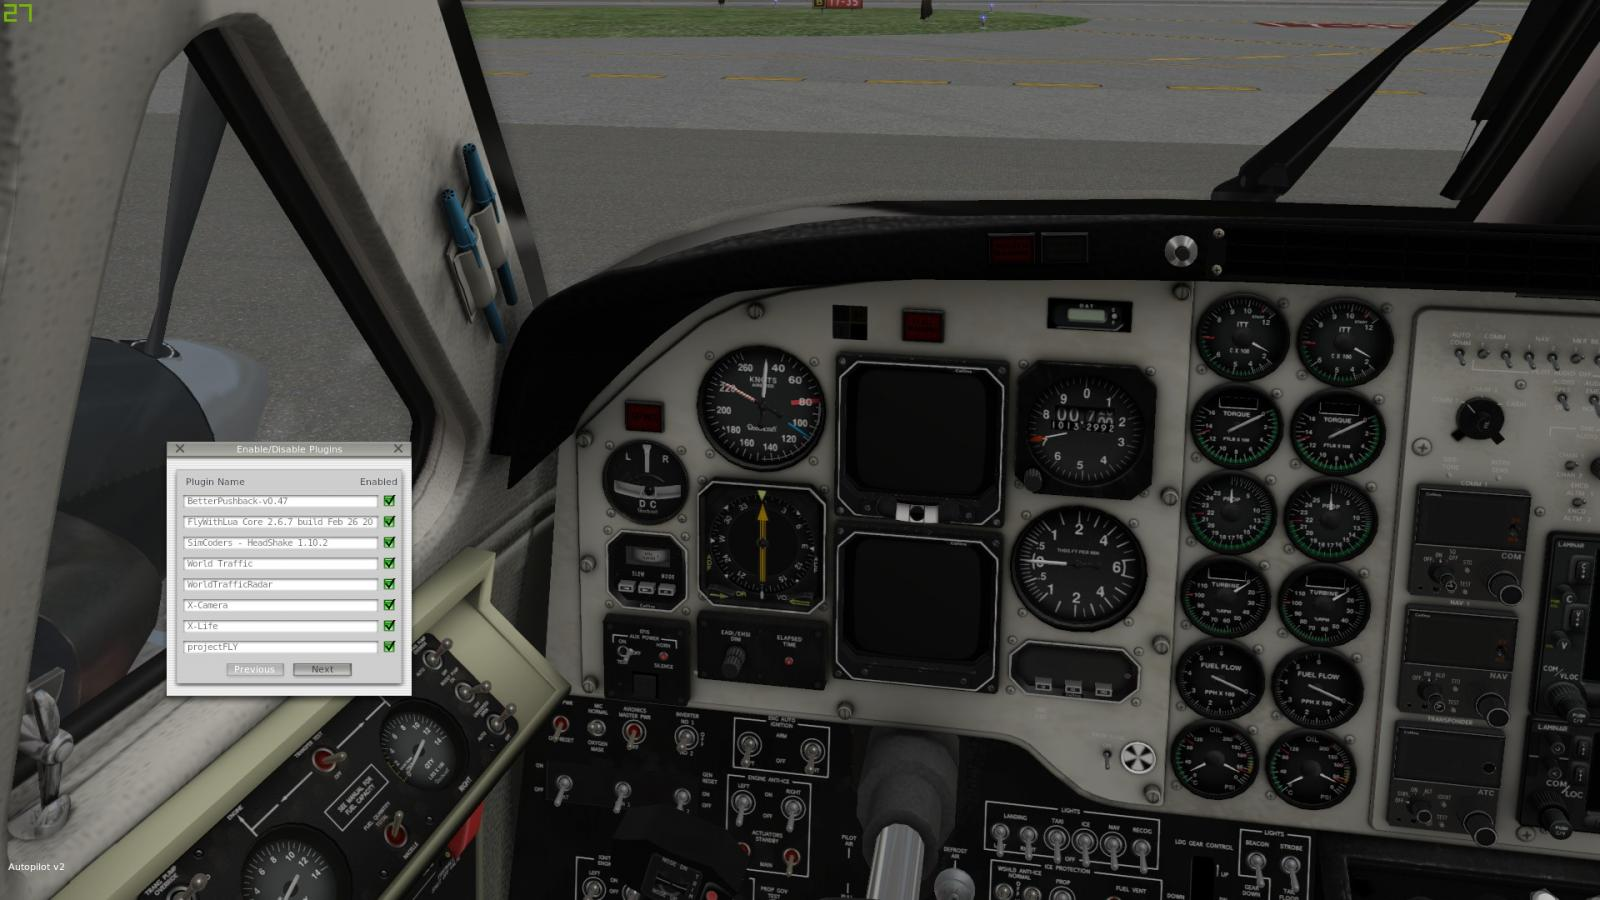 World Traffic Radar freezing 3D cockpit levers and switches